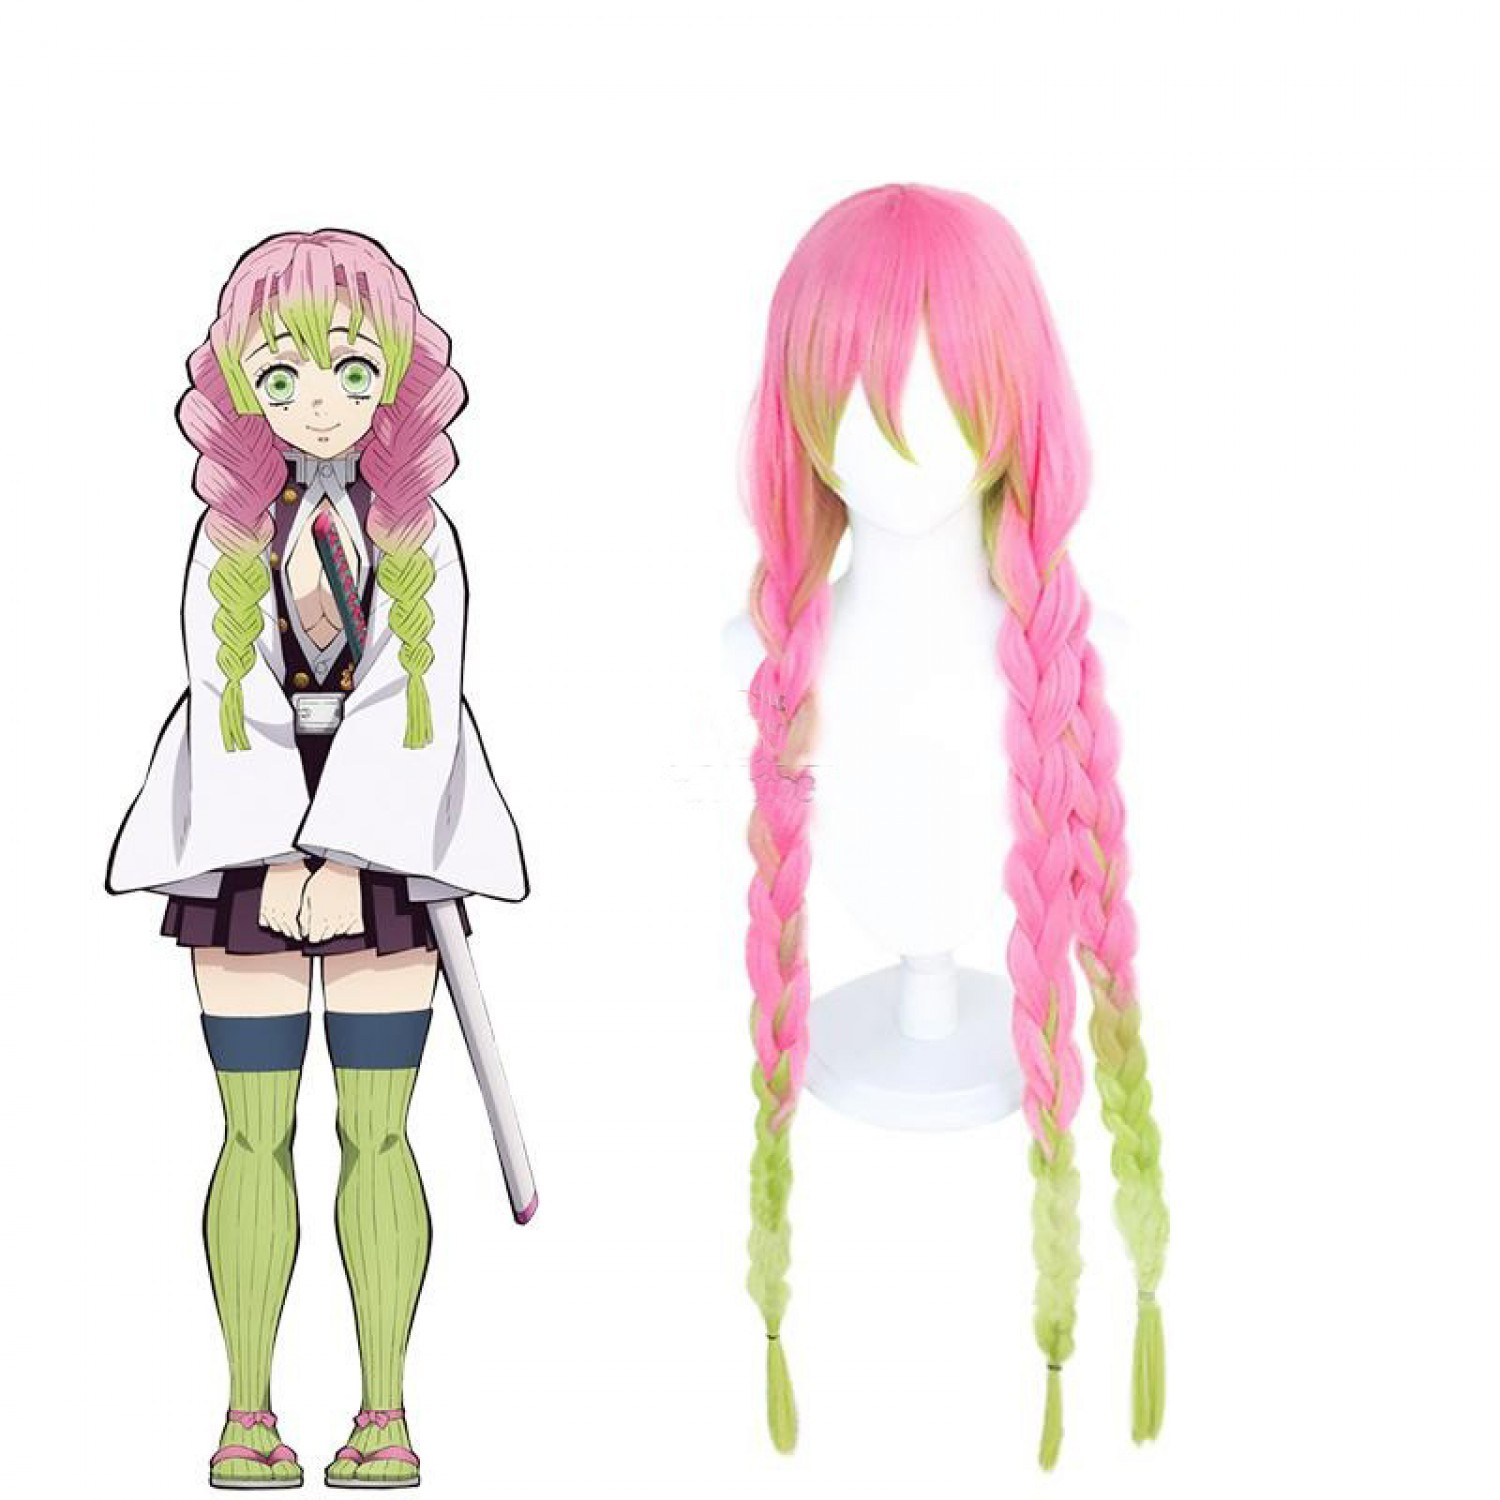 Demon Slayer Kanroji Mitsuri Cosplay Hair Wig Free Shipping 29 99 Mitsuri is a very emotional and passionate person, who is constantly complimenting people in her head, which likely relates to why she is called the 'the pillar of love.'. demon slayer kanroji mitsuri cosplay